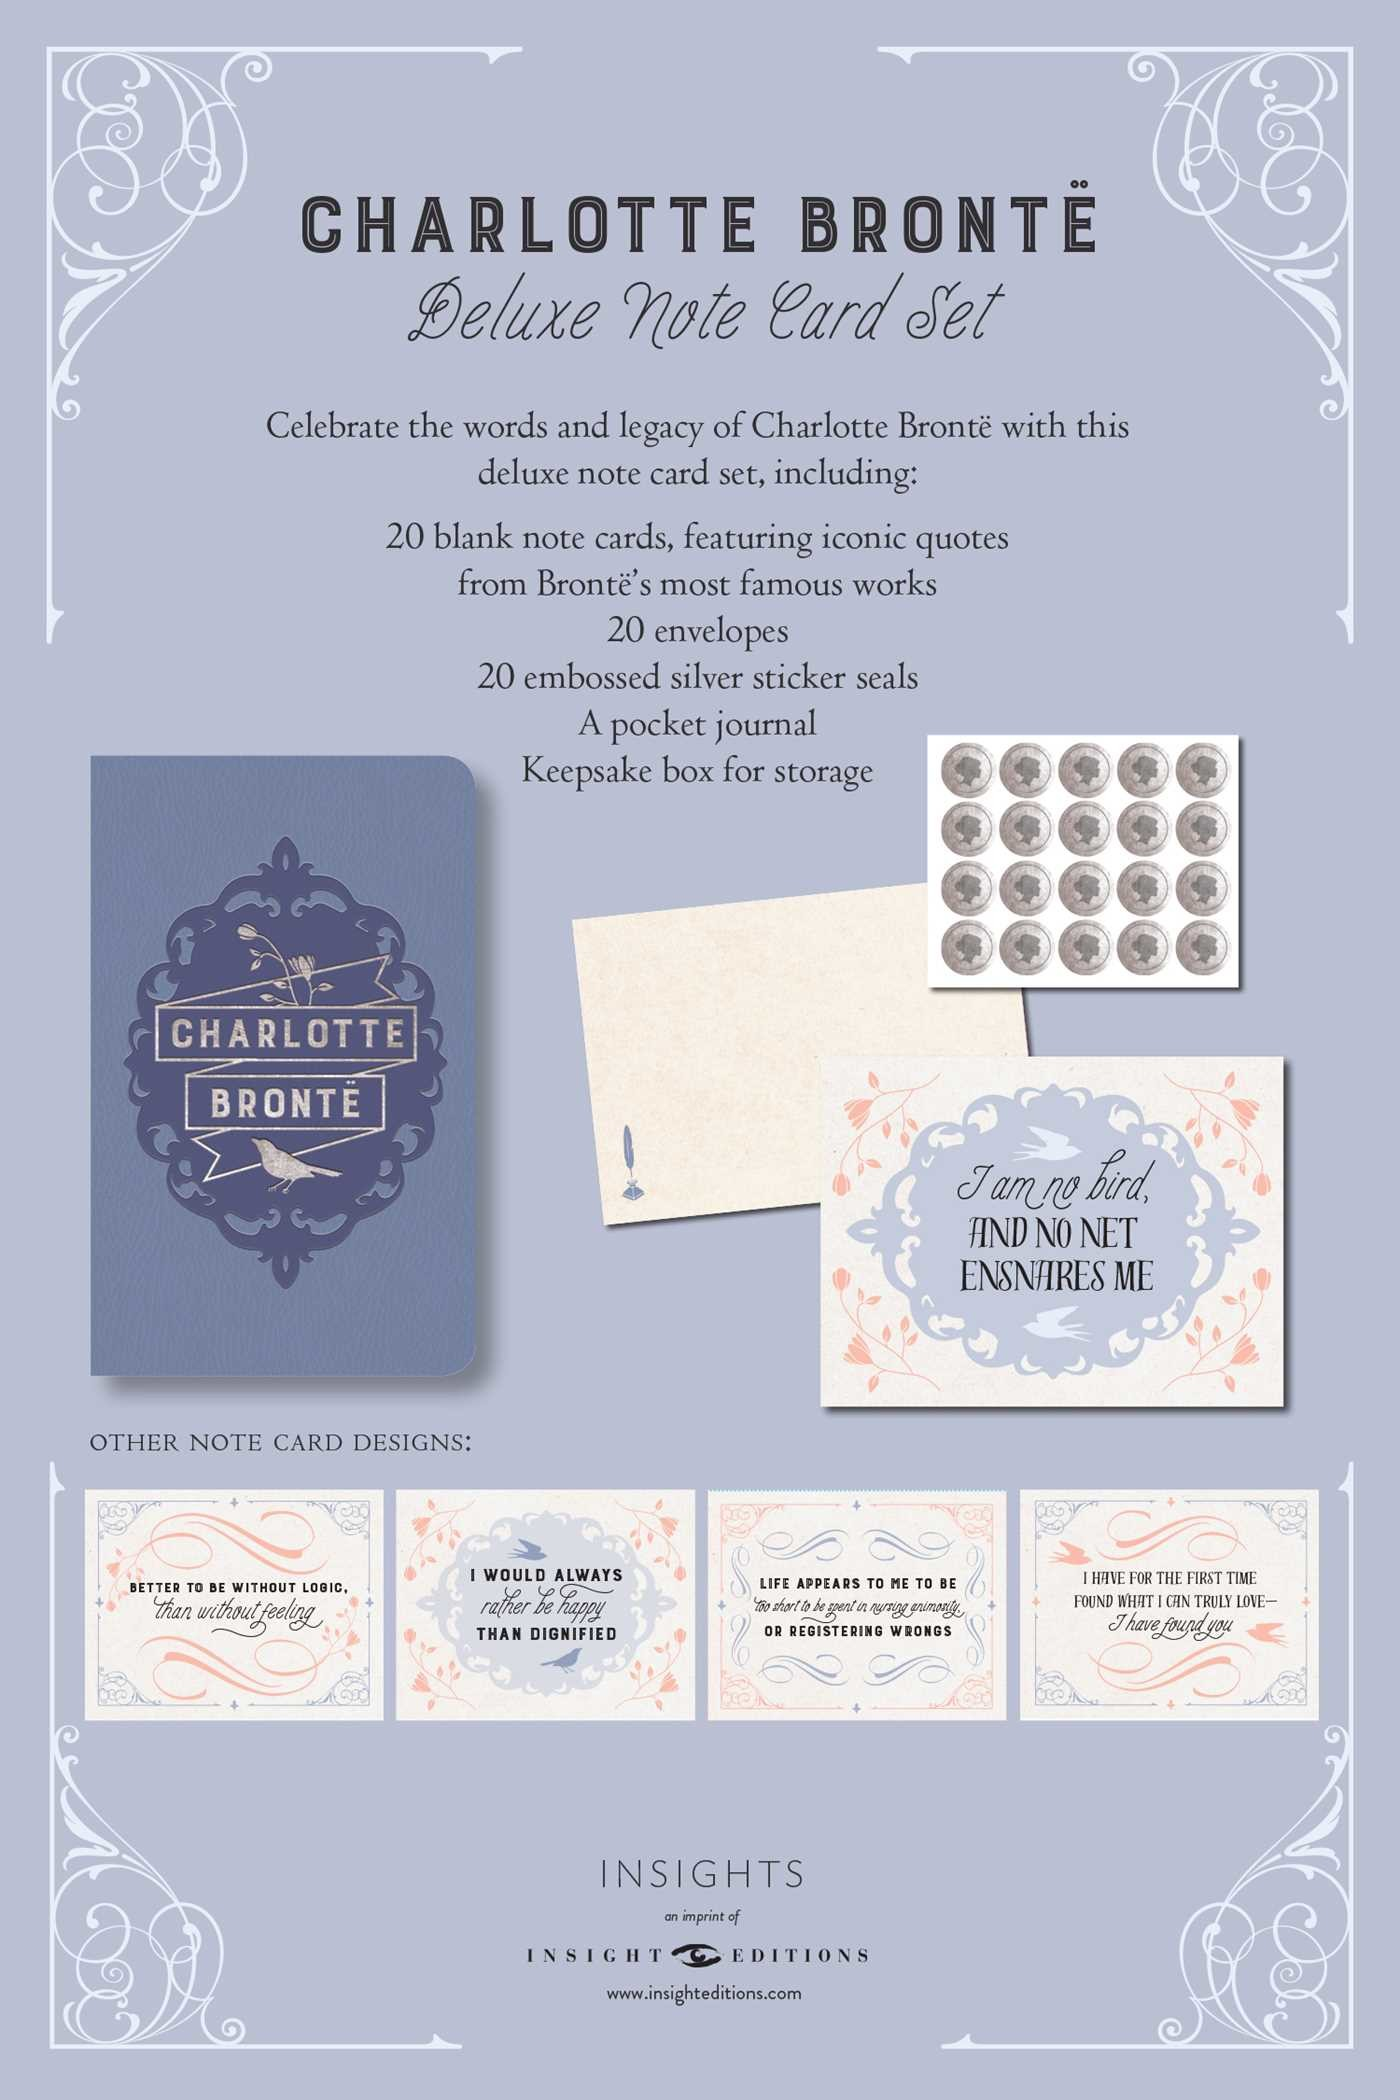 Charlotte bronte deluxe note card set with keepsake book box 9781683833109.in10